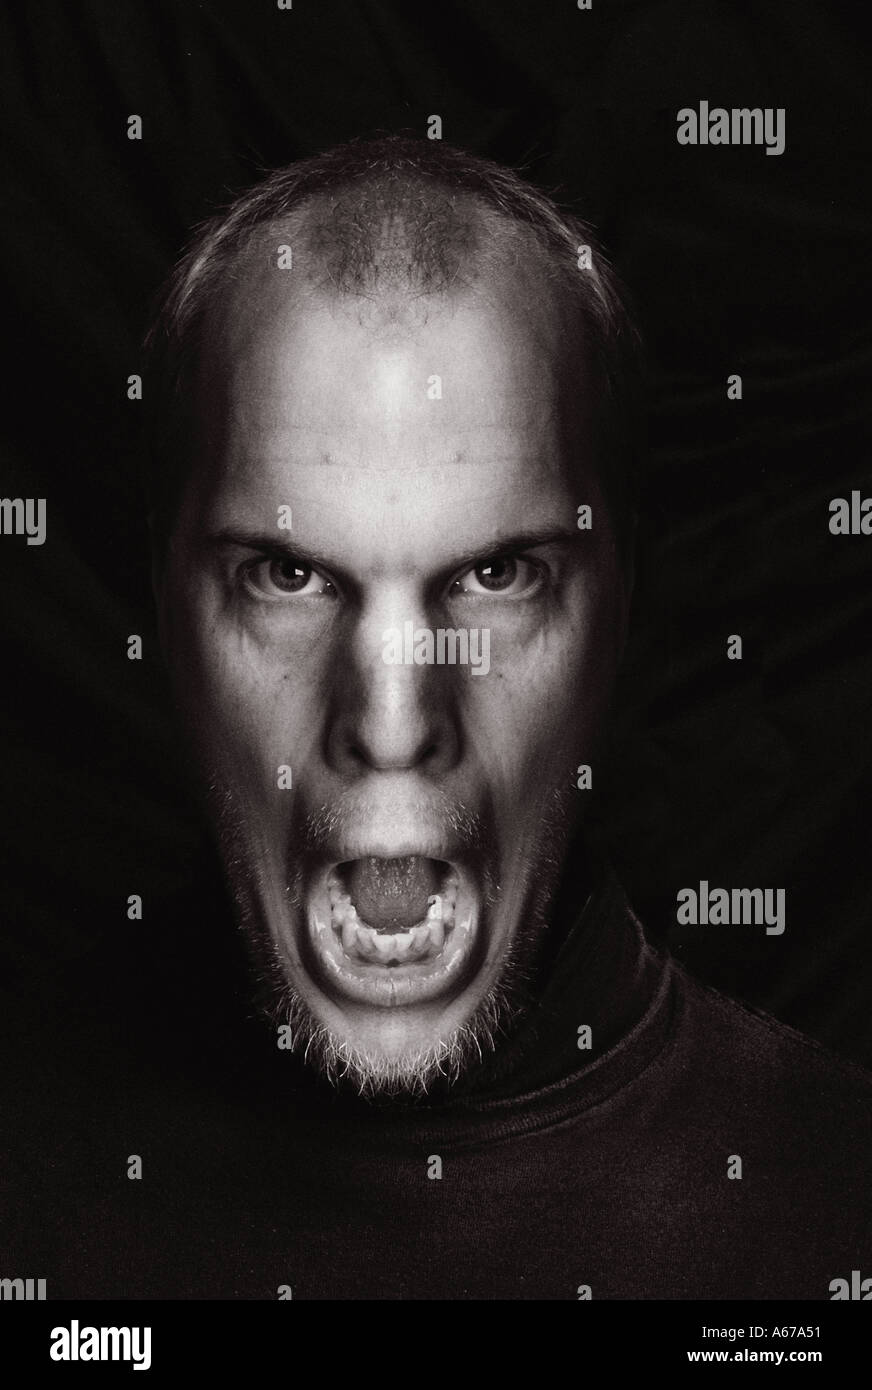 Surreal Screaming man s face illustration - Stock Image